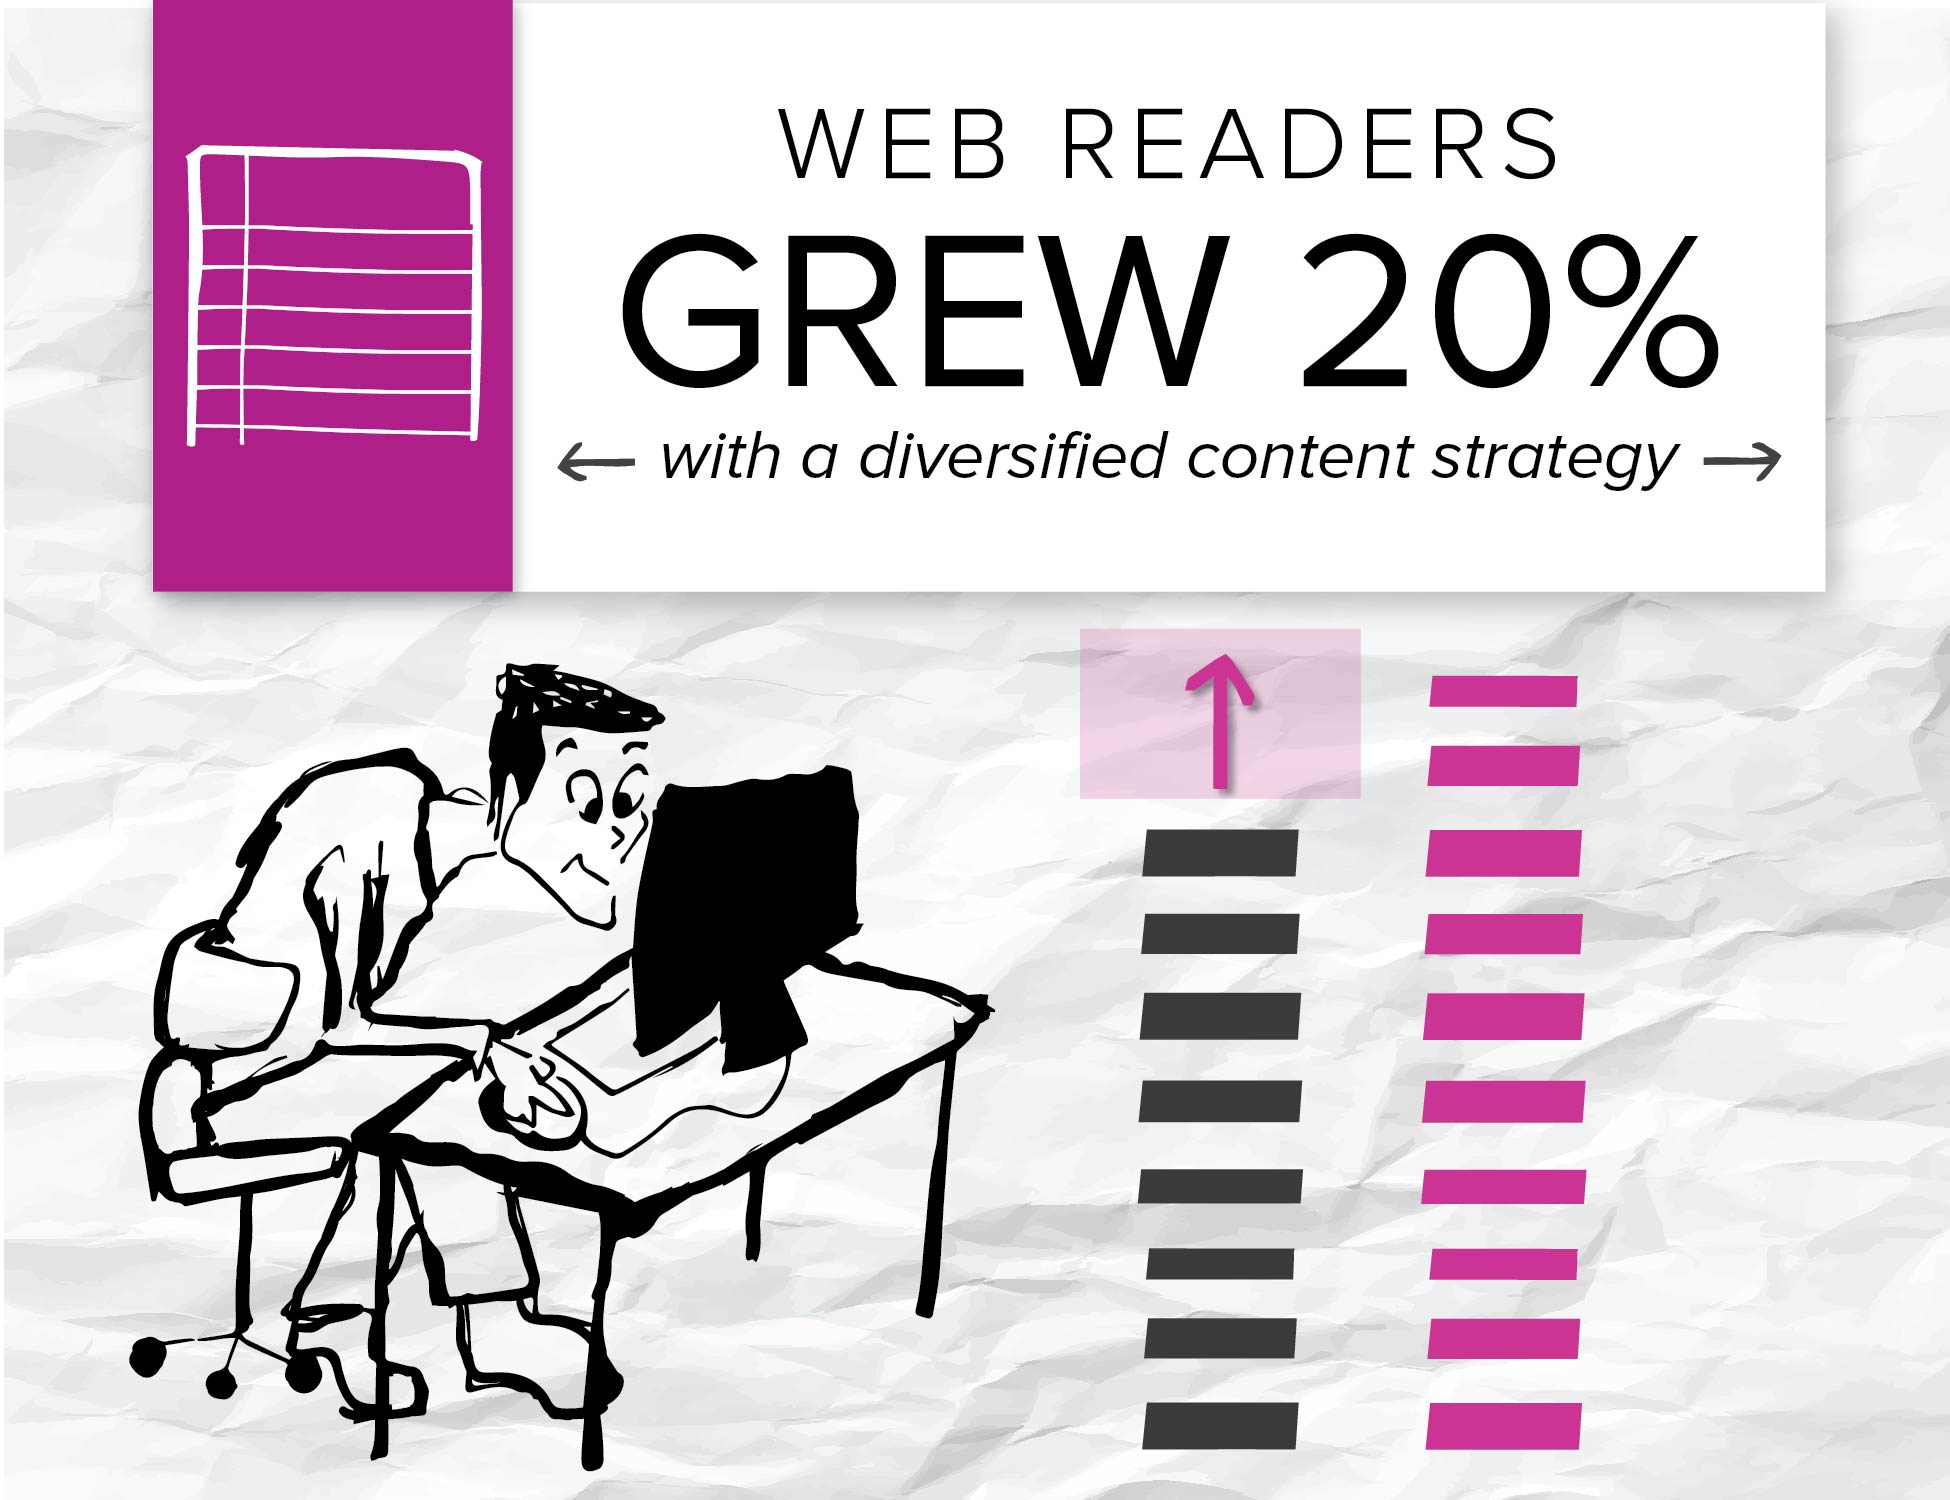 A client got 20 percent more readers when it diversified its content strategy for its website.